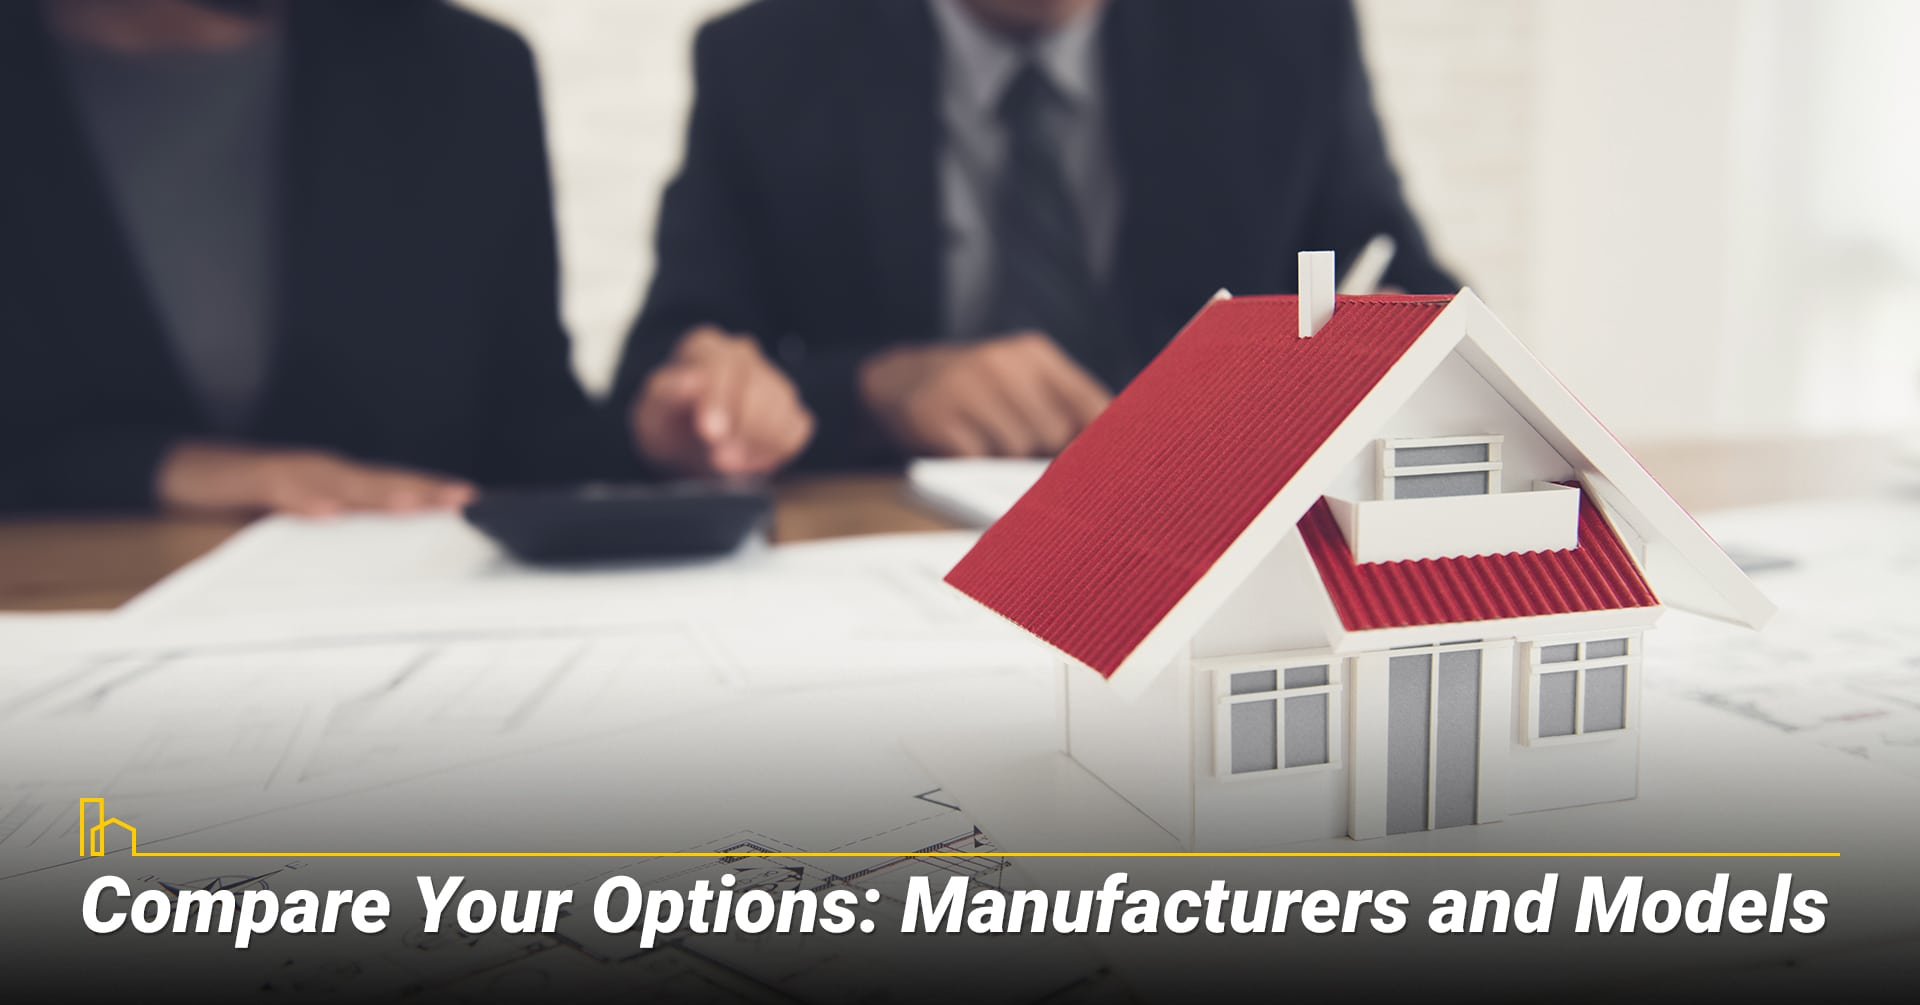 Compare Your Options: Manufacturers and Models